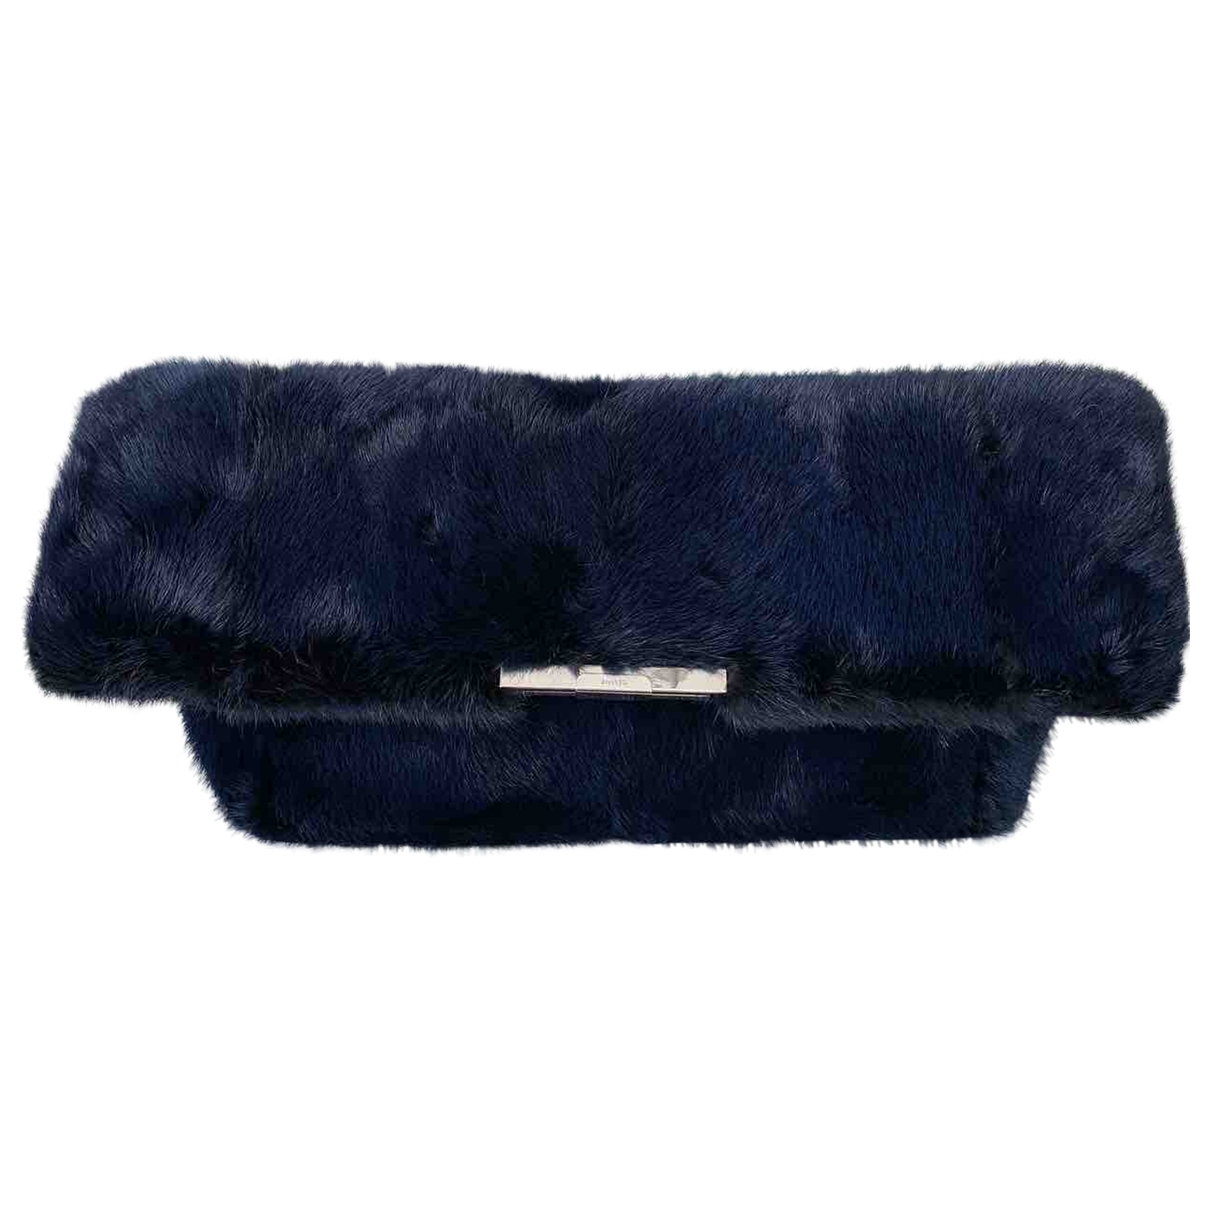 Celine \N Blue Mink Clutch bag for Women \N